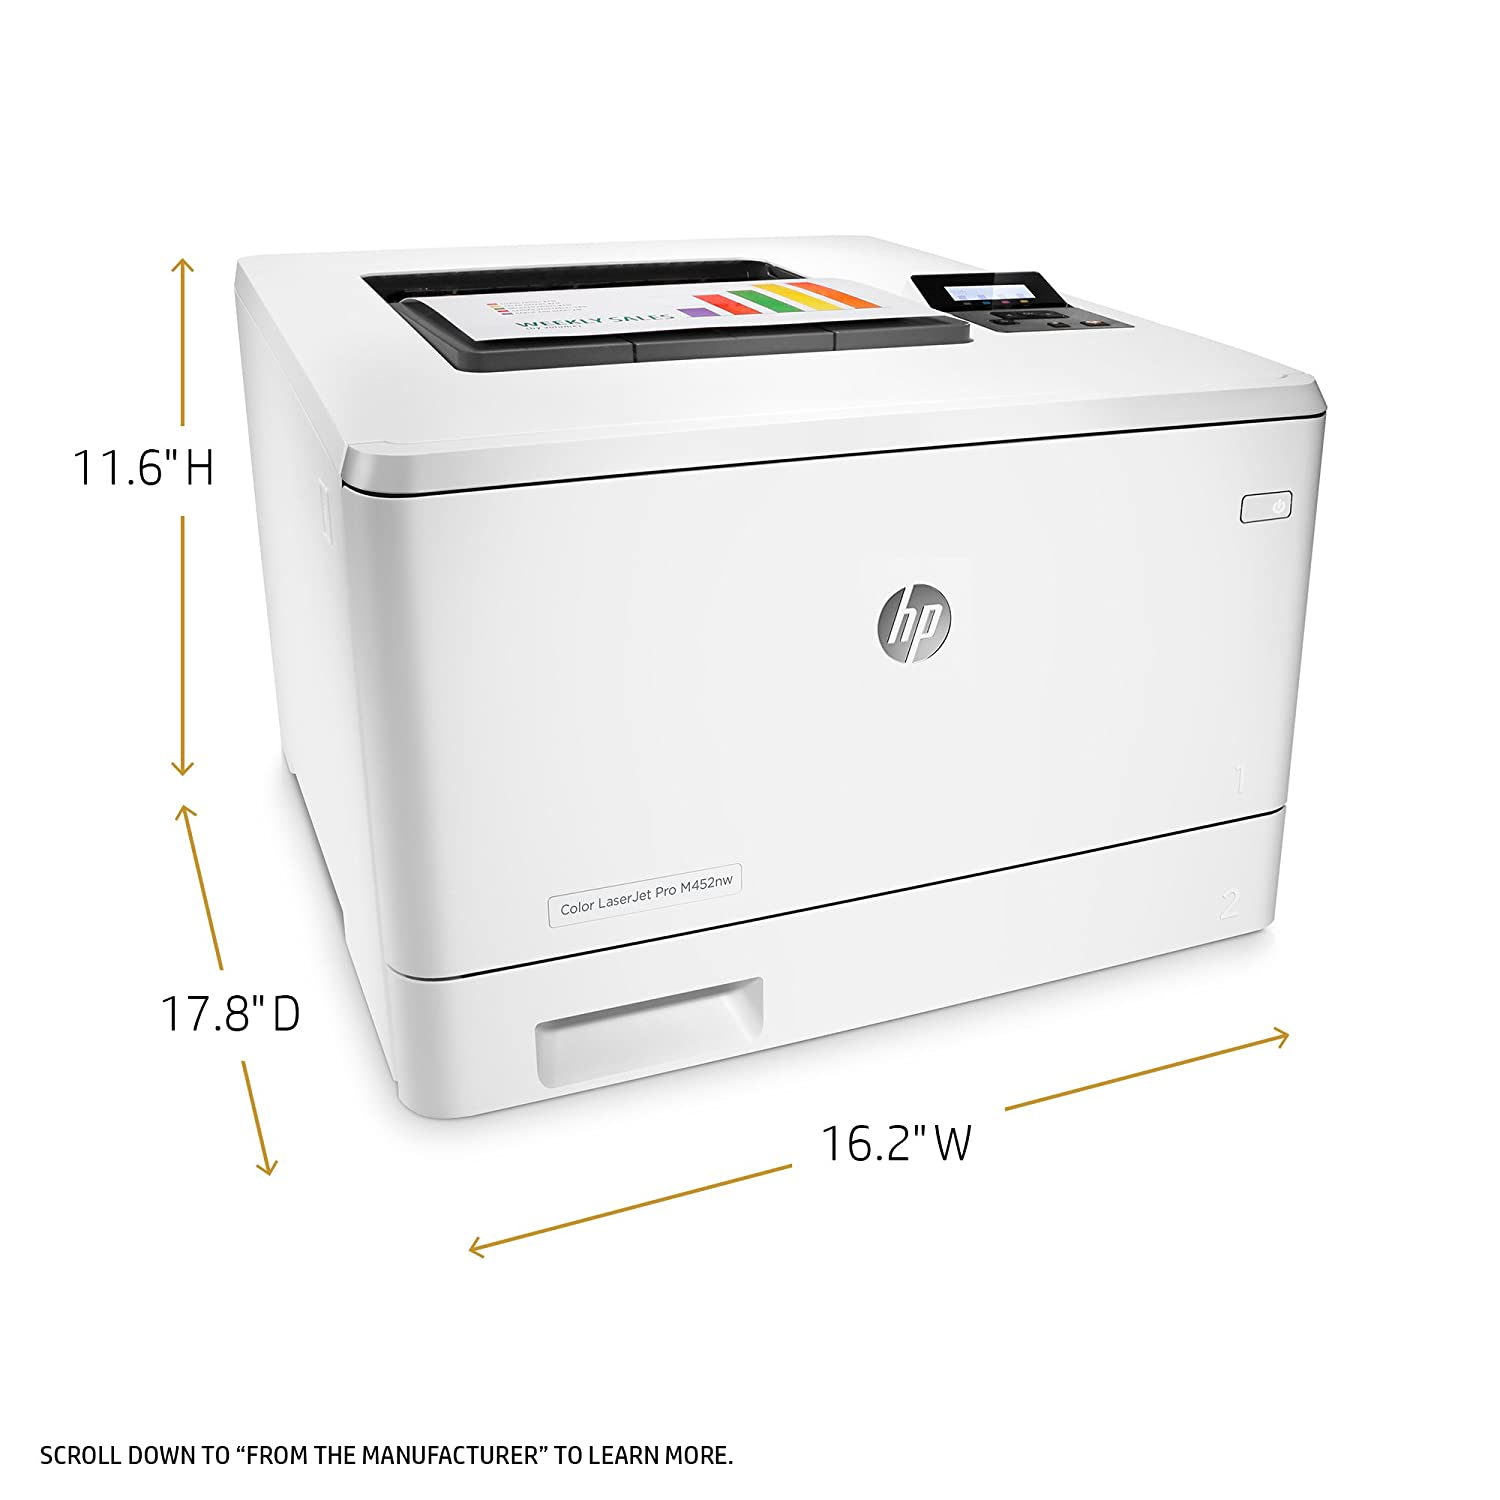 Amazon.com: HP Laserjet Pro M452nw Wireless Color Laser Printer with  Built-in Ethernet, Amazon Dash Replenishment Ready (CF388A): Electronics